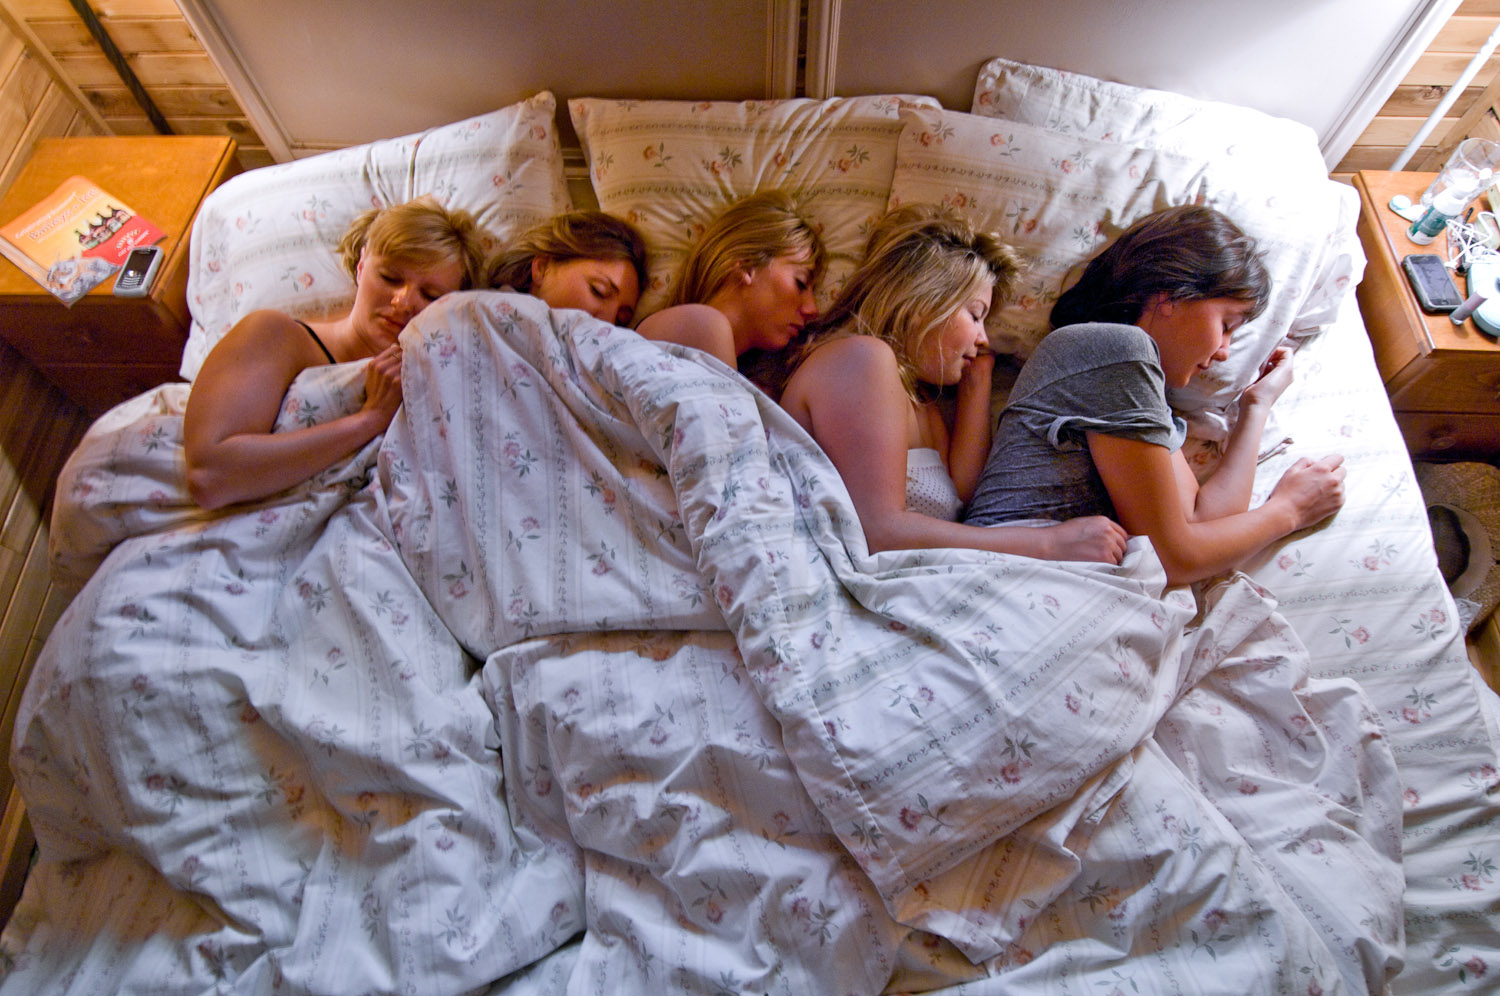 Five girls in bed by Winnipeg editorial photographer